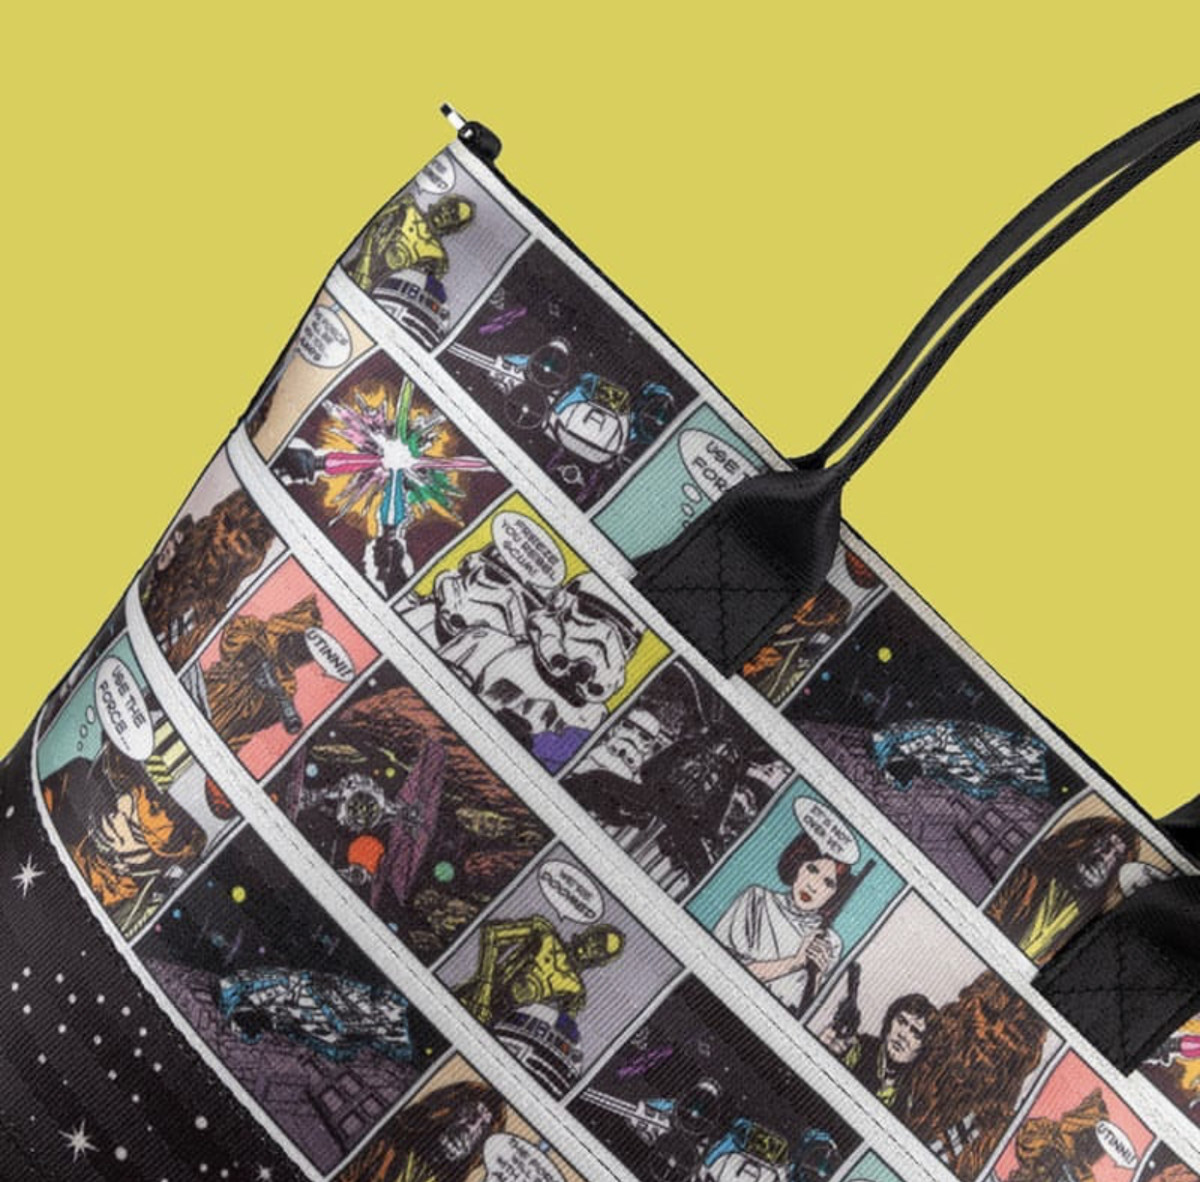 Sneak Peek Of New Harveys Star Wars Bags - They're Out Of This World 2